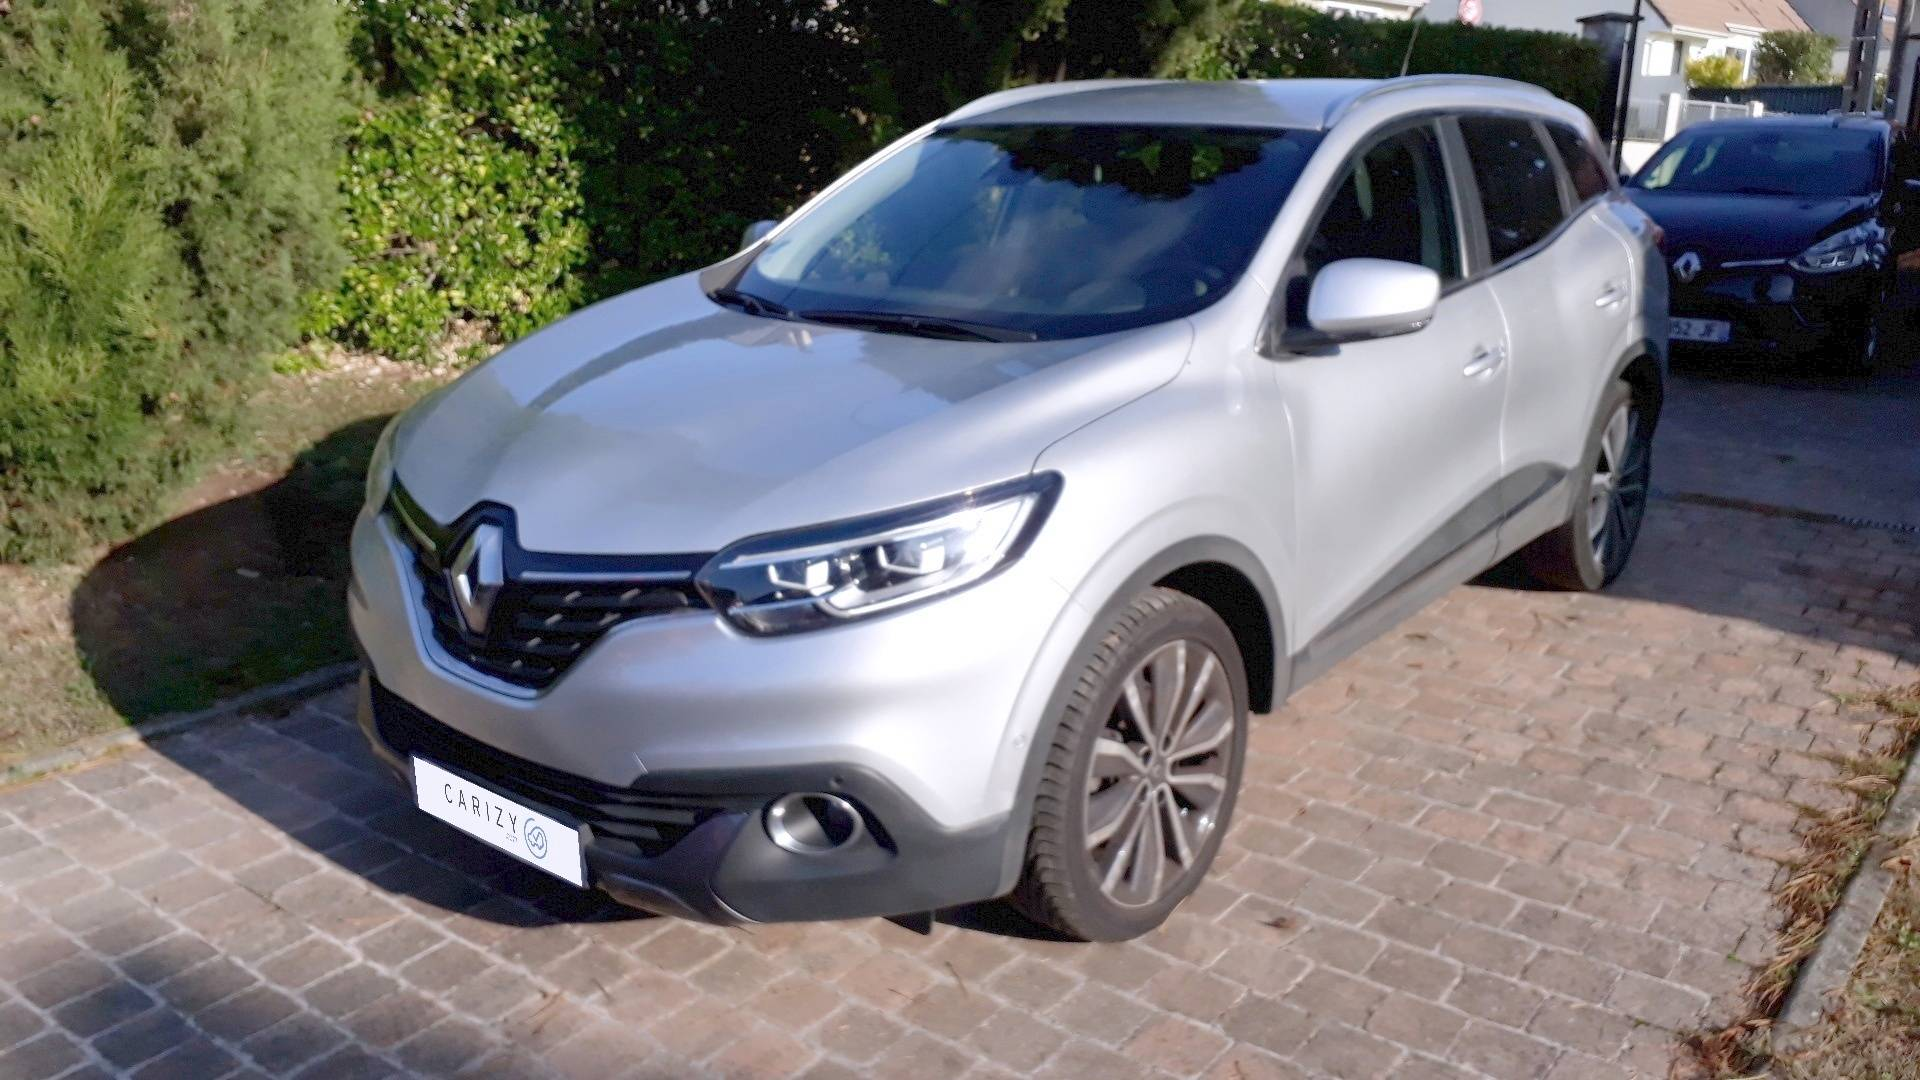 renault kadjar d 39 occasion 1 6 dci 130 energy bose la chapelle en serval carizy. Black Bedroom Furniture Sets. Home Design Ideas